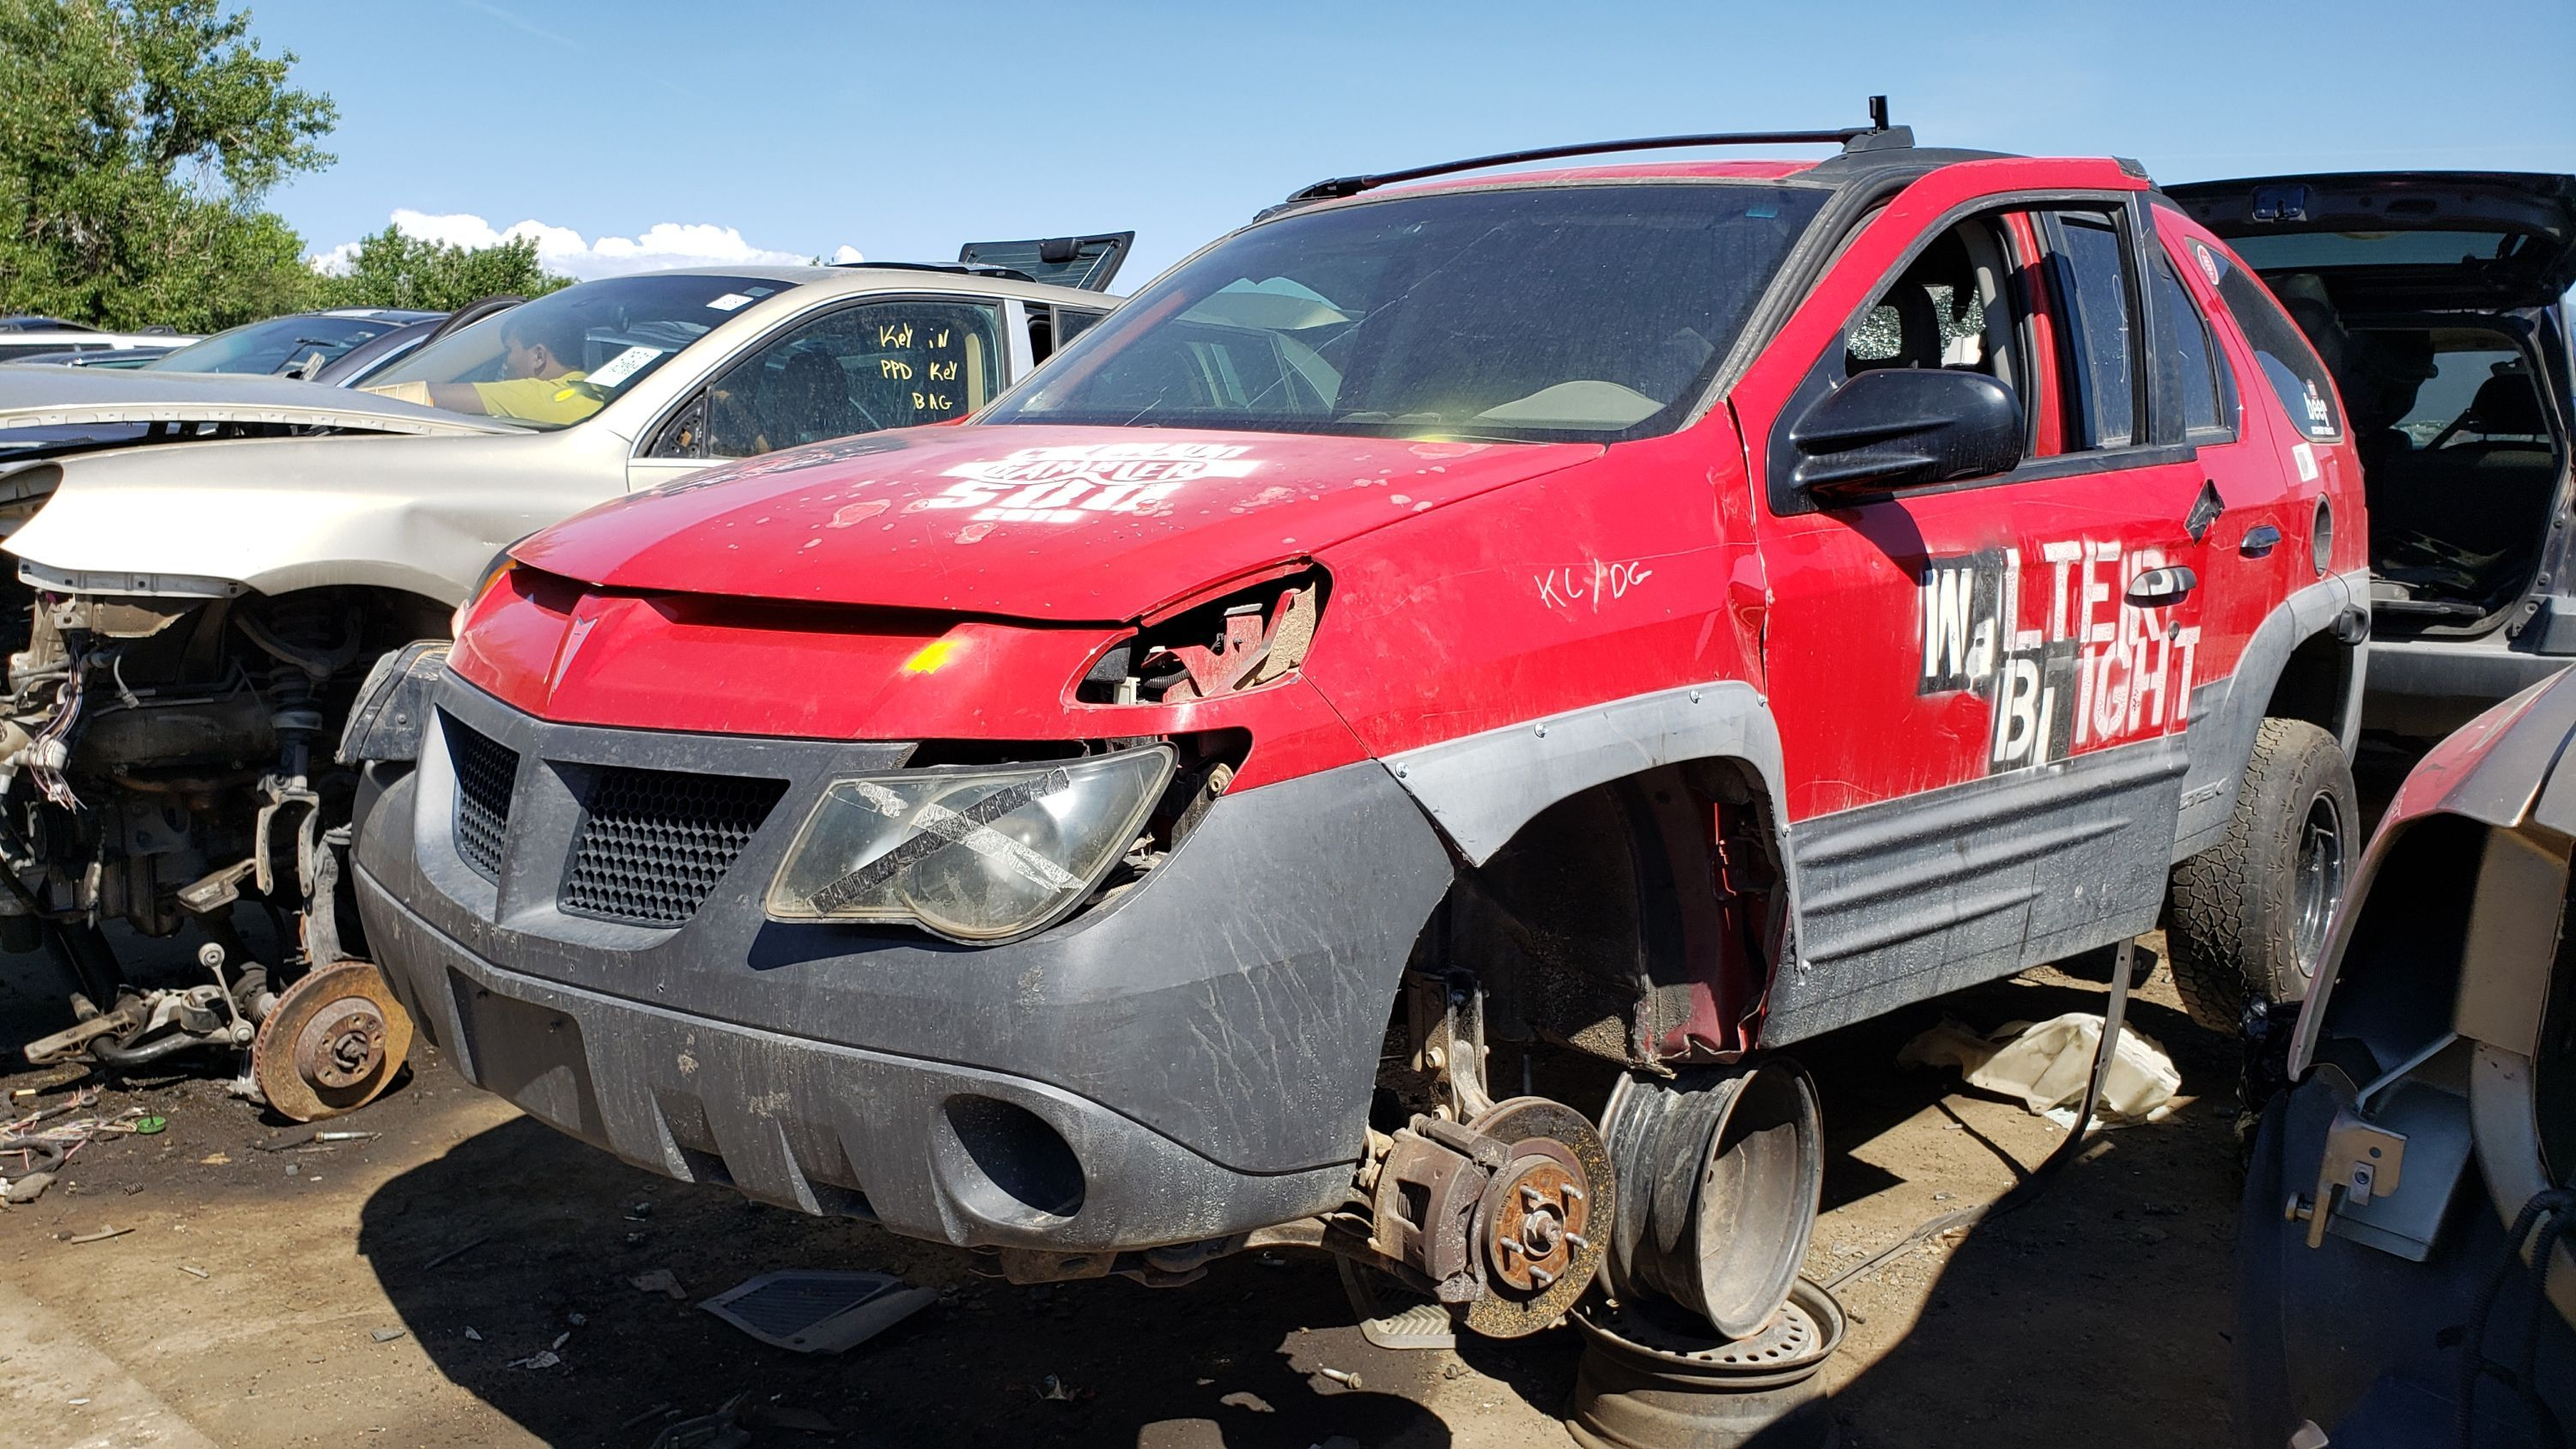 Junkyard Treasure 2001 Pontiac Aztek Walter Blight Edition